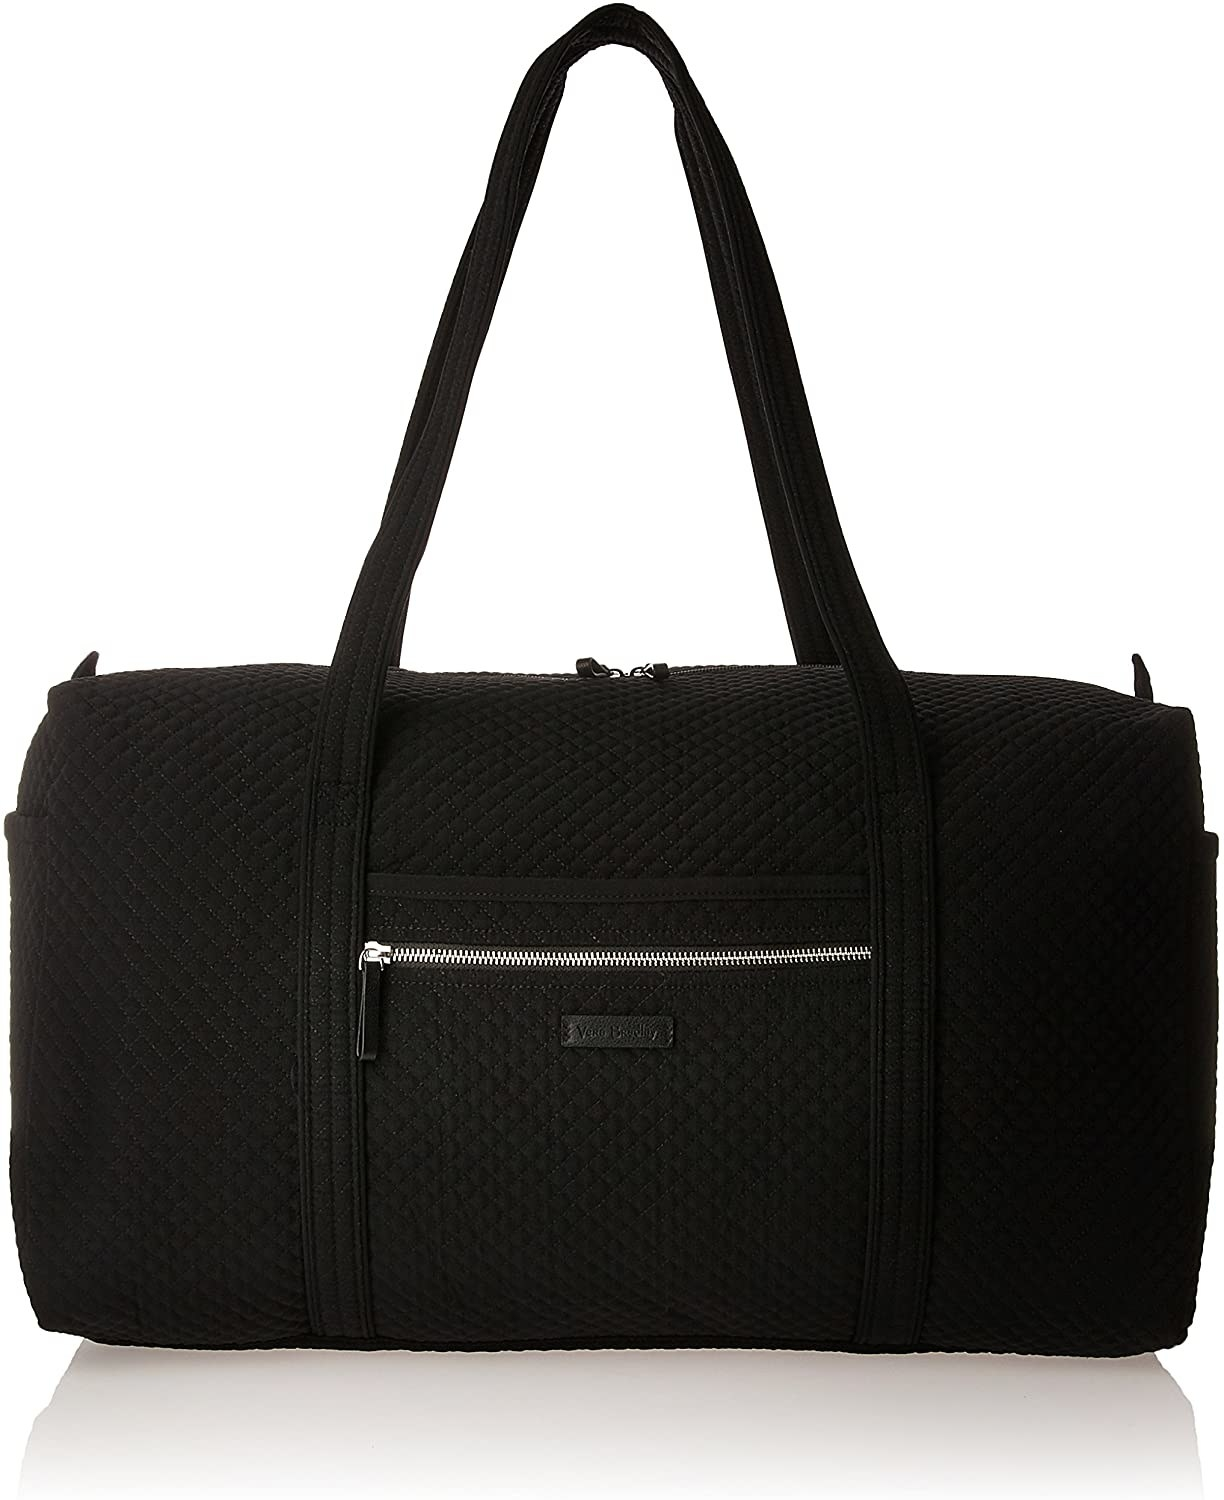 The black quilted bag